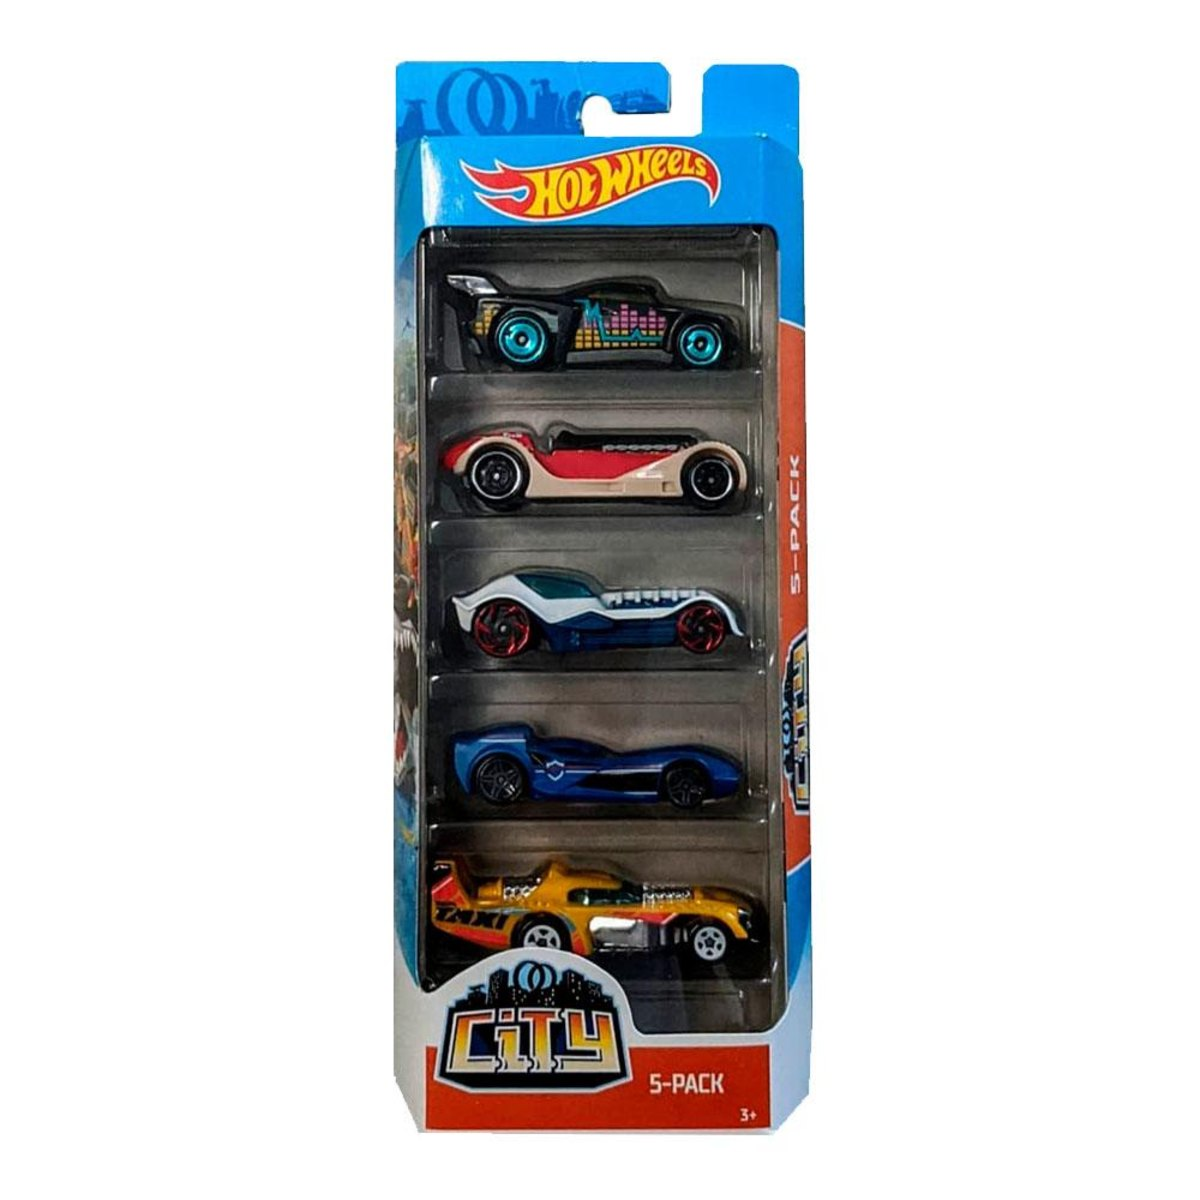 Pack Com 5 Carrinho Hot Wheels: City - Mattel